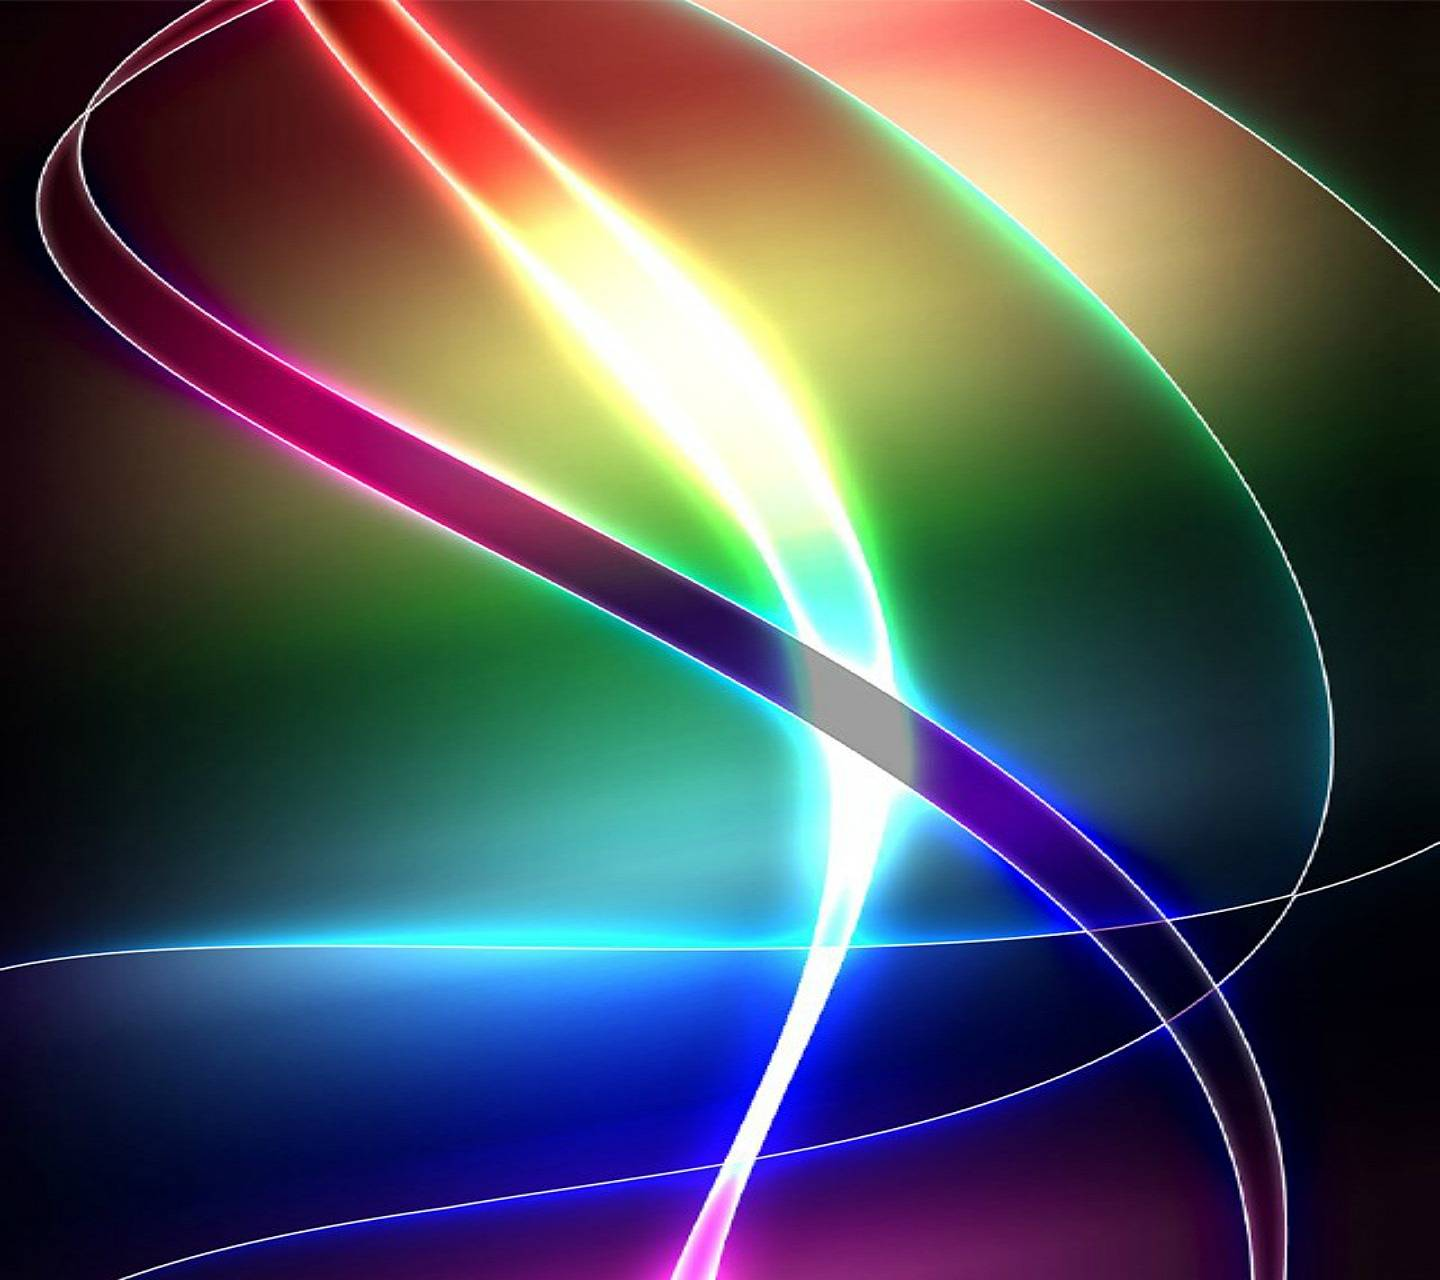 Abstract Rays Hd